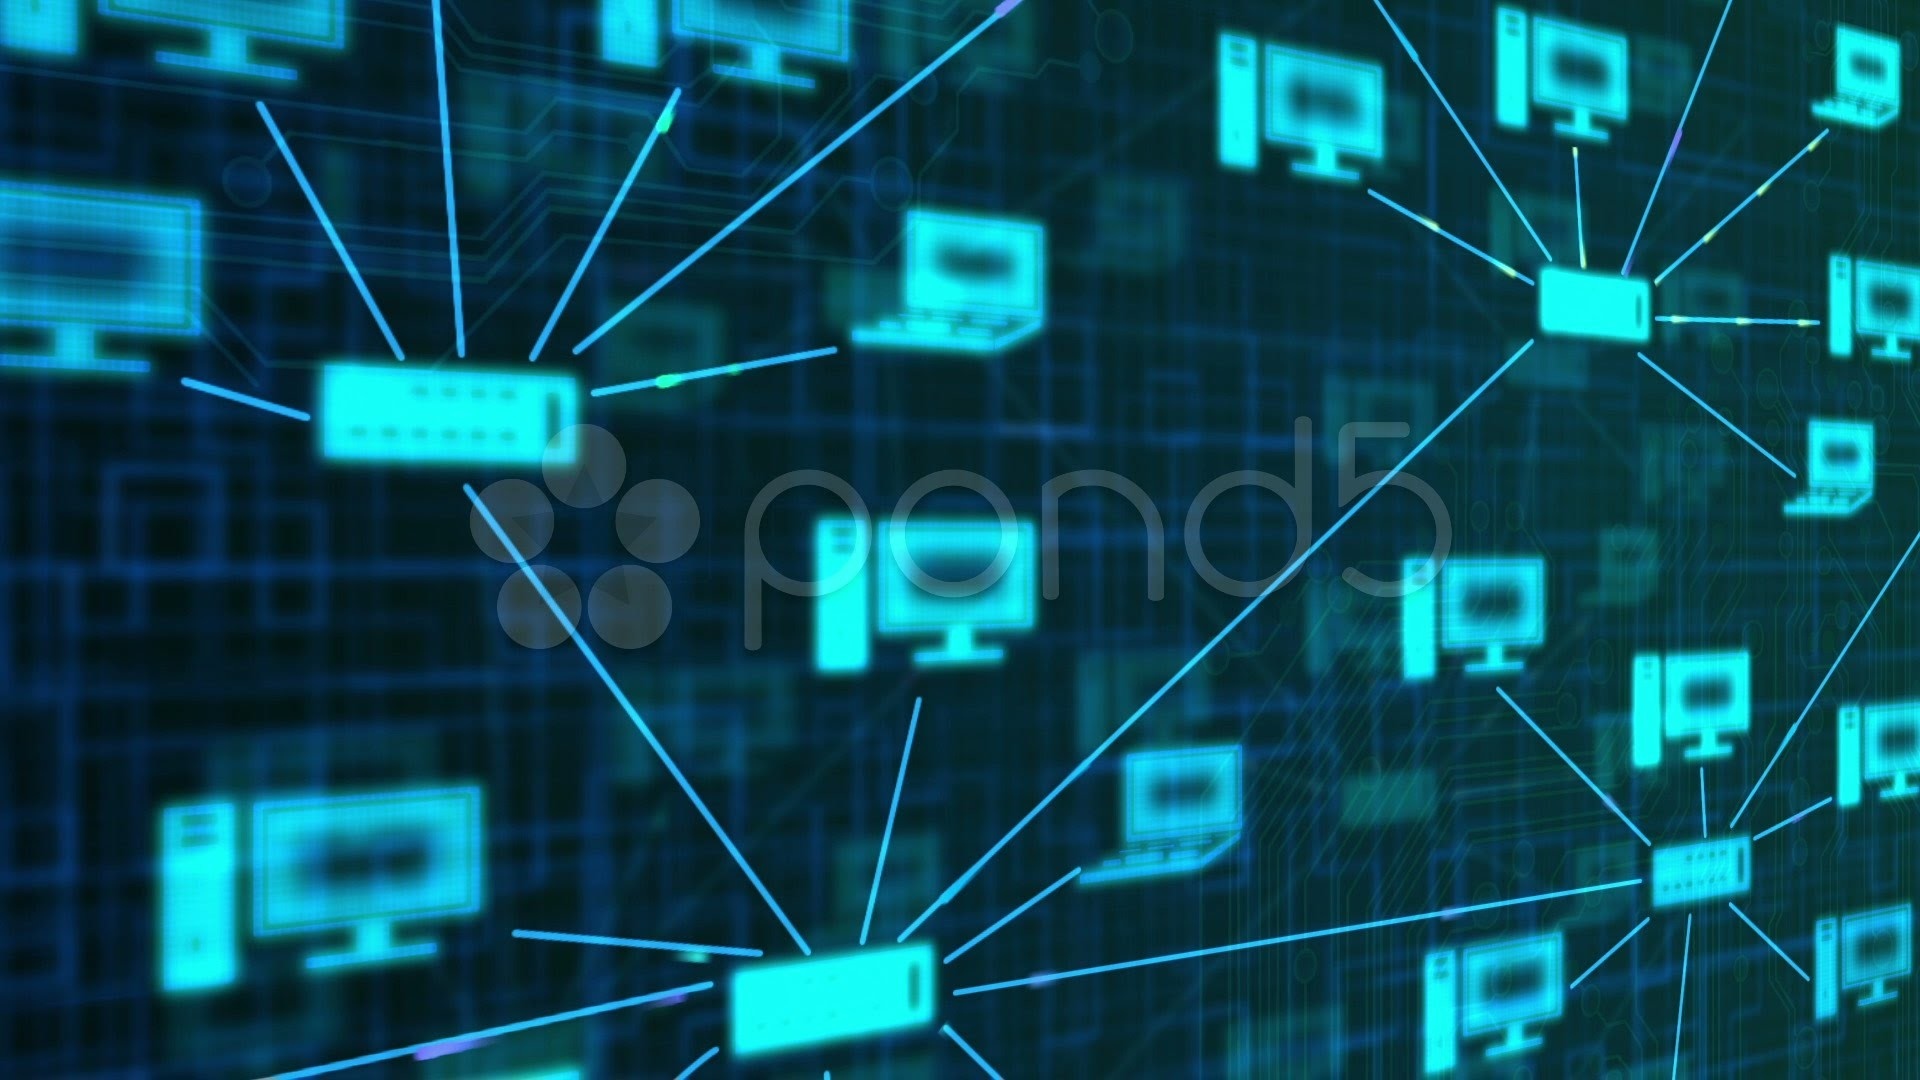 Computer Networking Backgrounds hd Computer Network Background